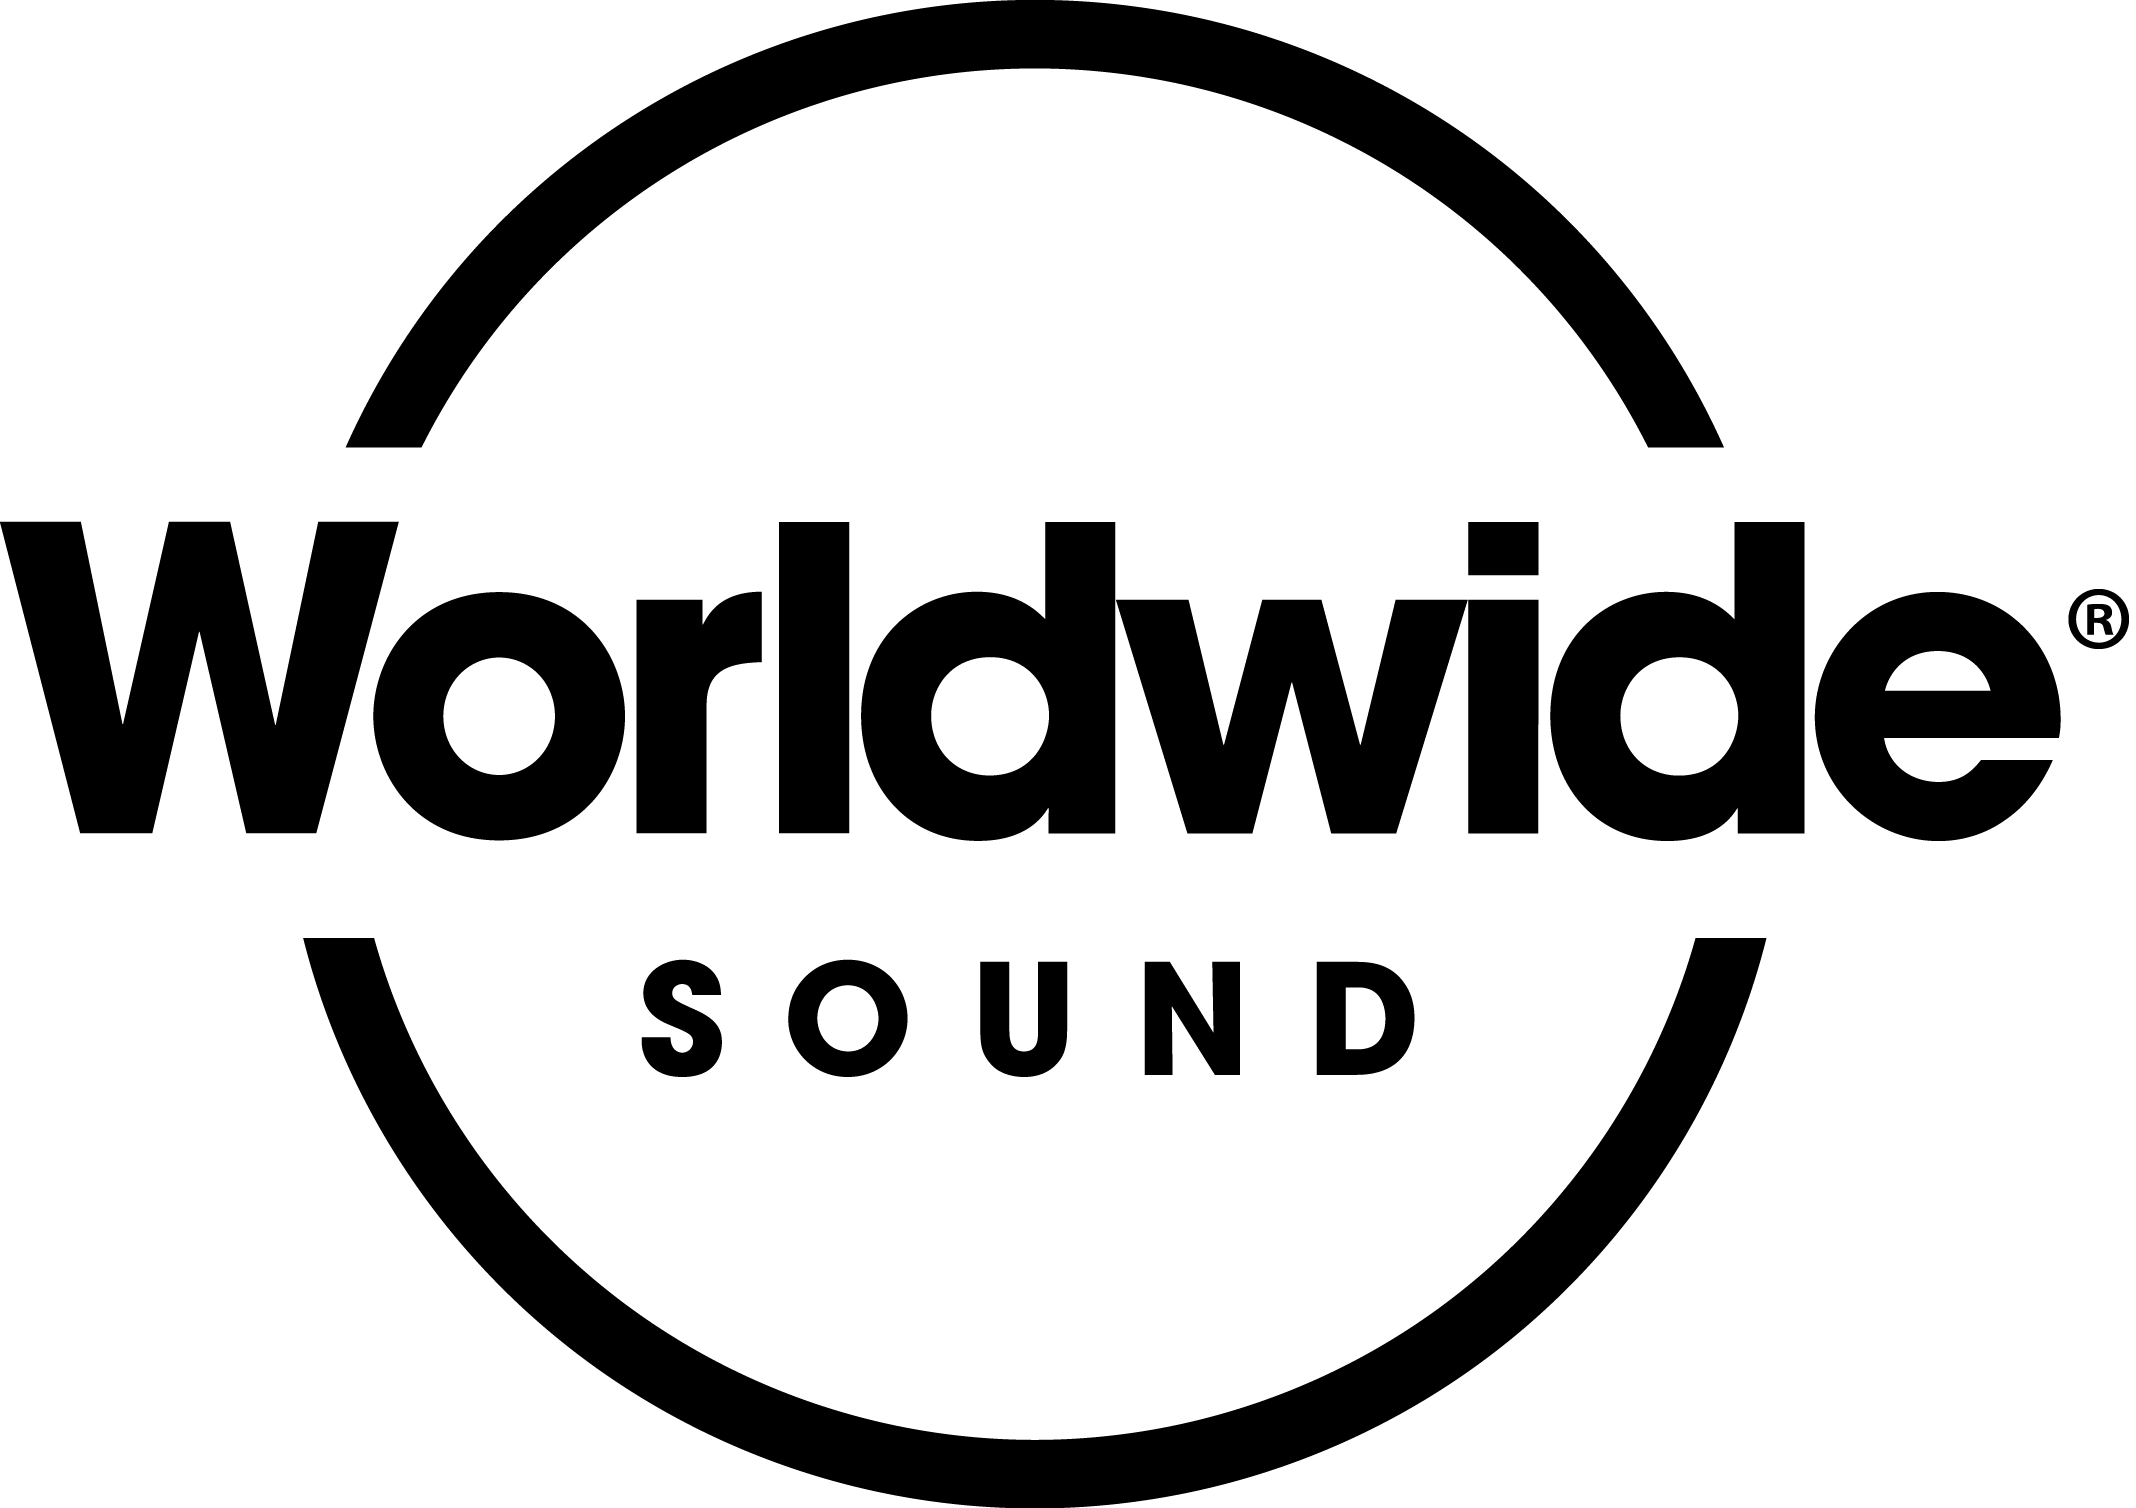 WORLDWIDE SOUND - BLACK